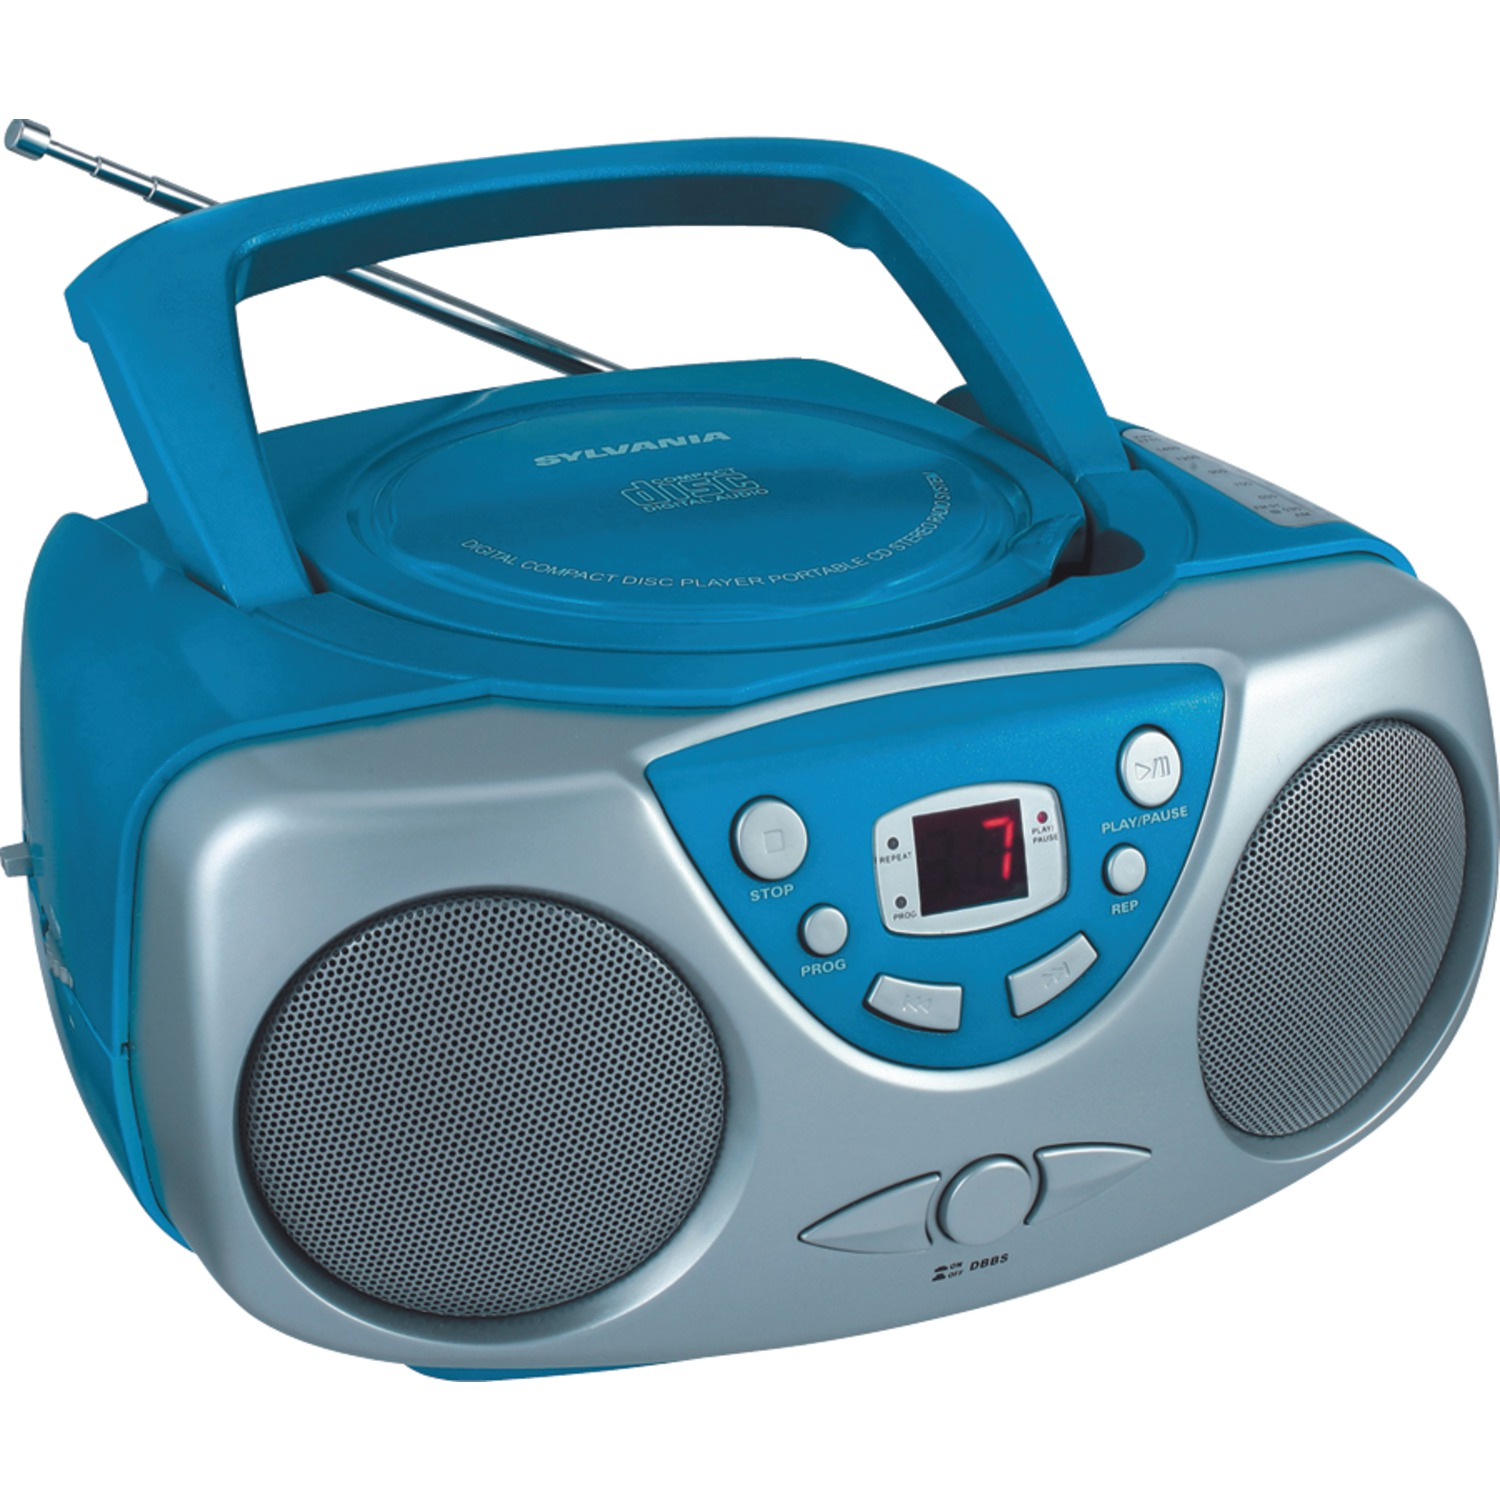 Sylvania SRCD243M Portable CD Boom Box with AM/FM Radio, Black